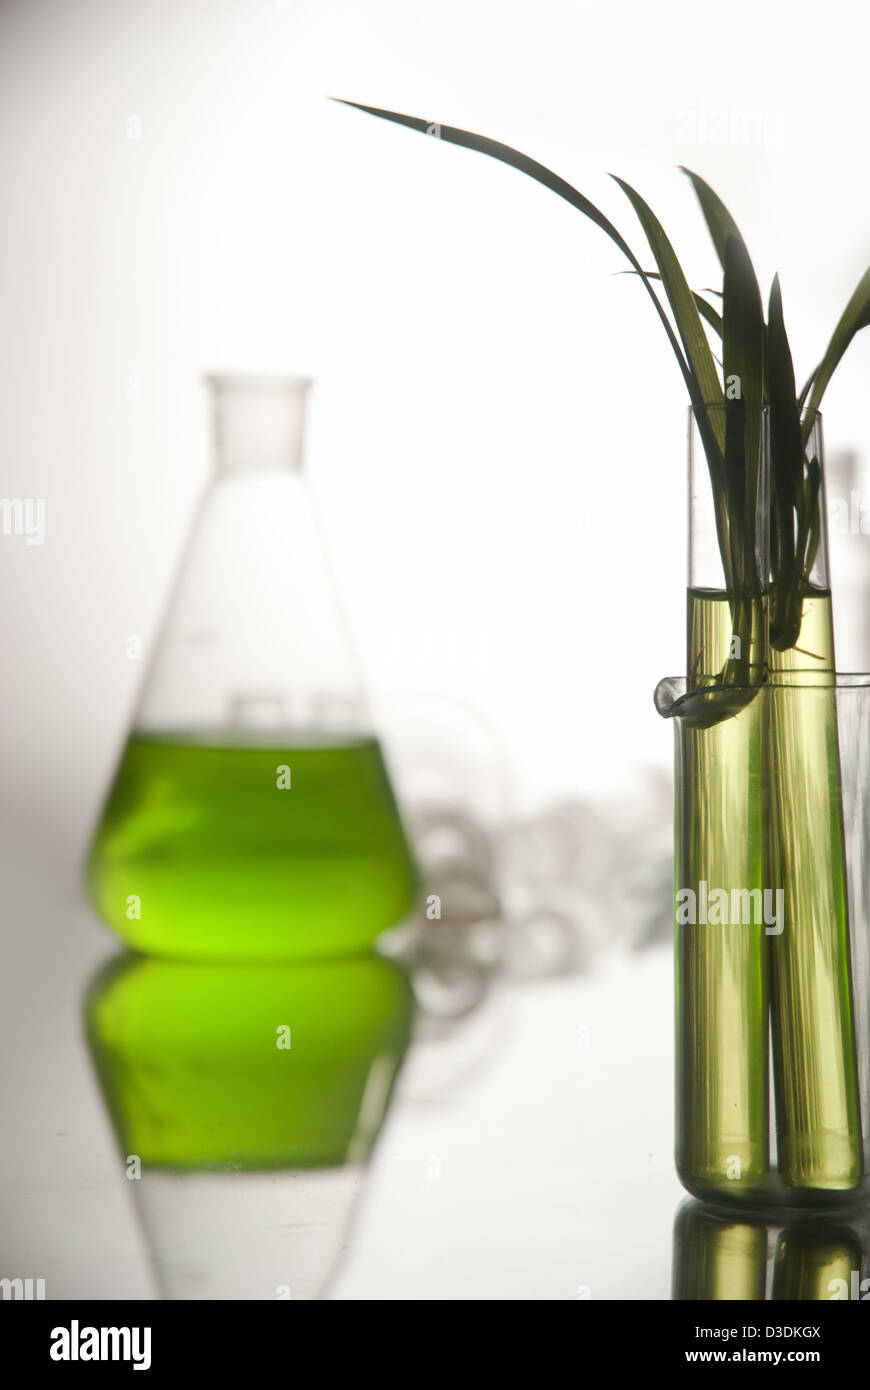 plantlet in the tube in lab - Stock Image